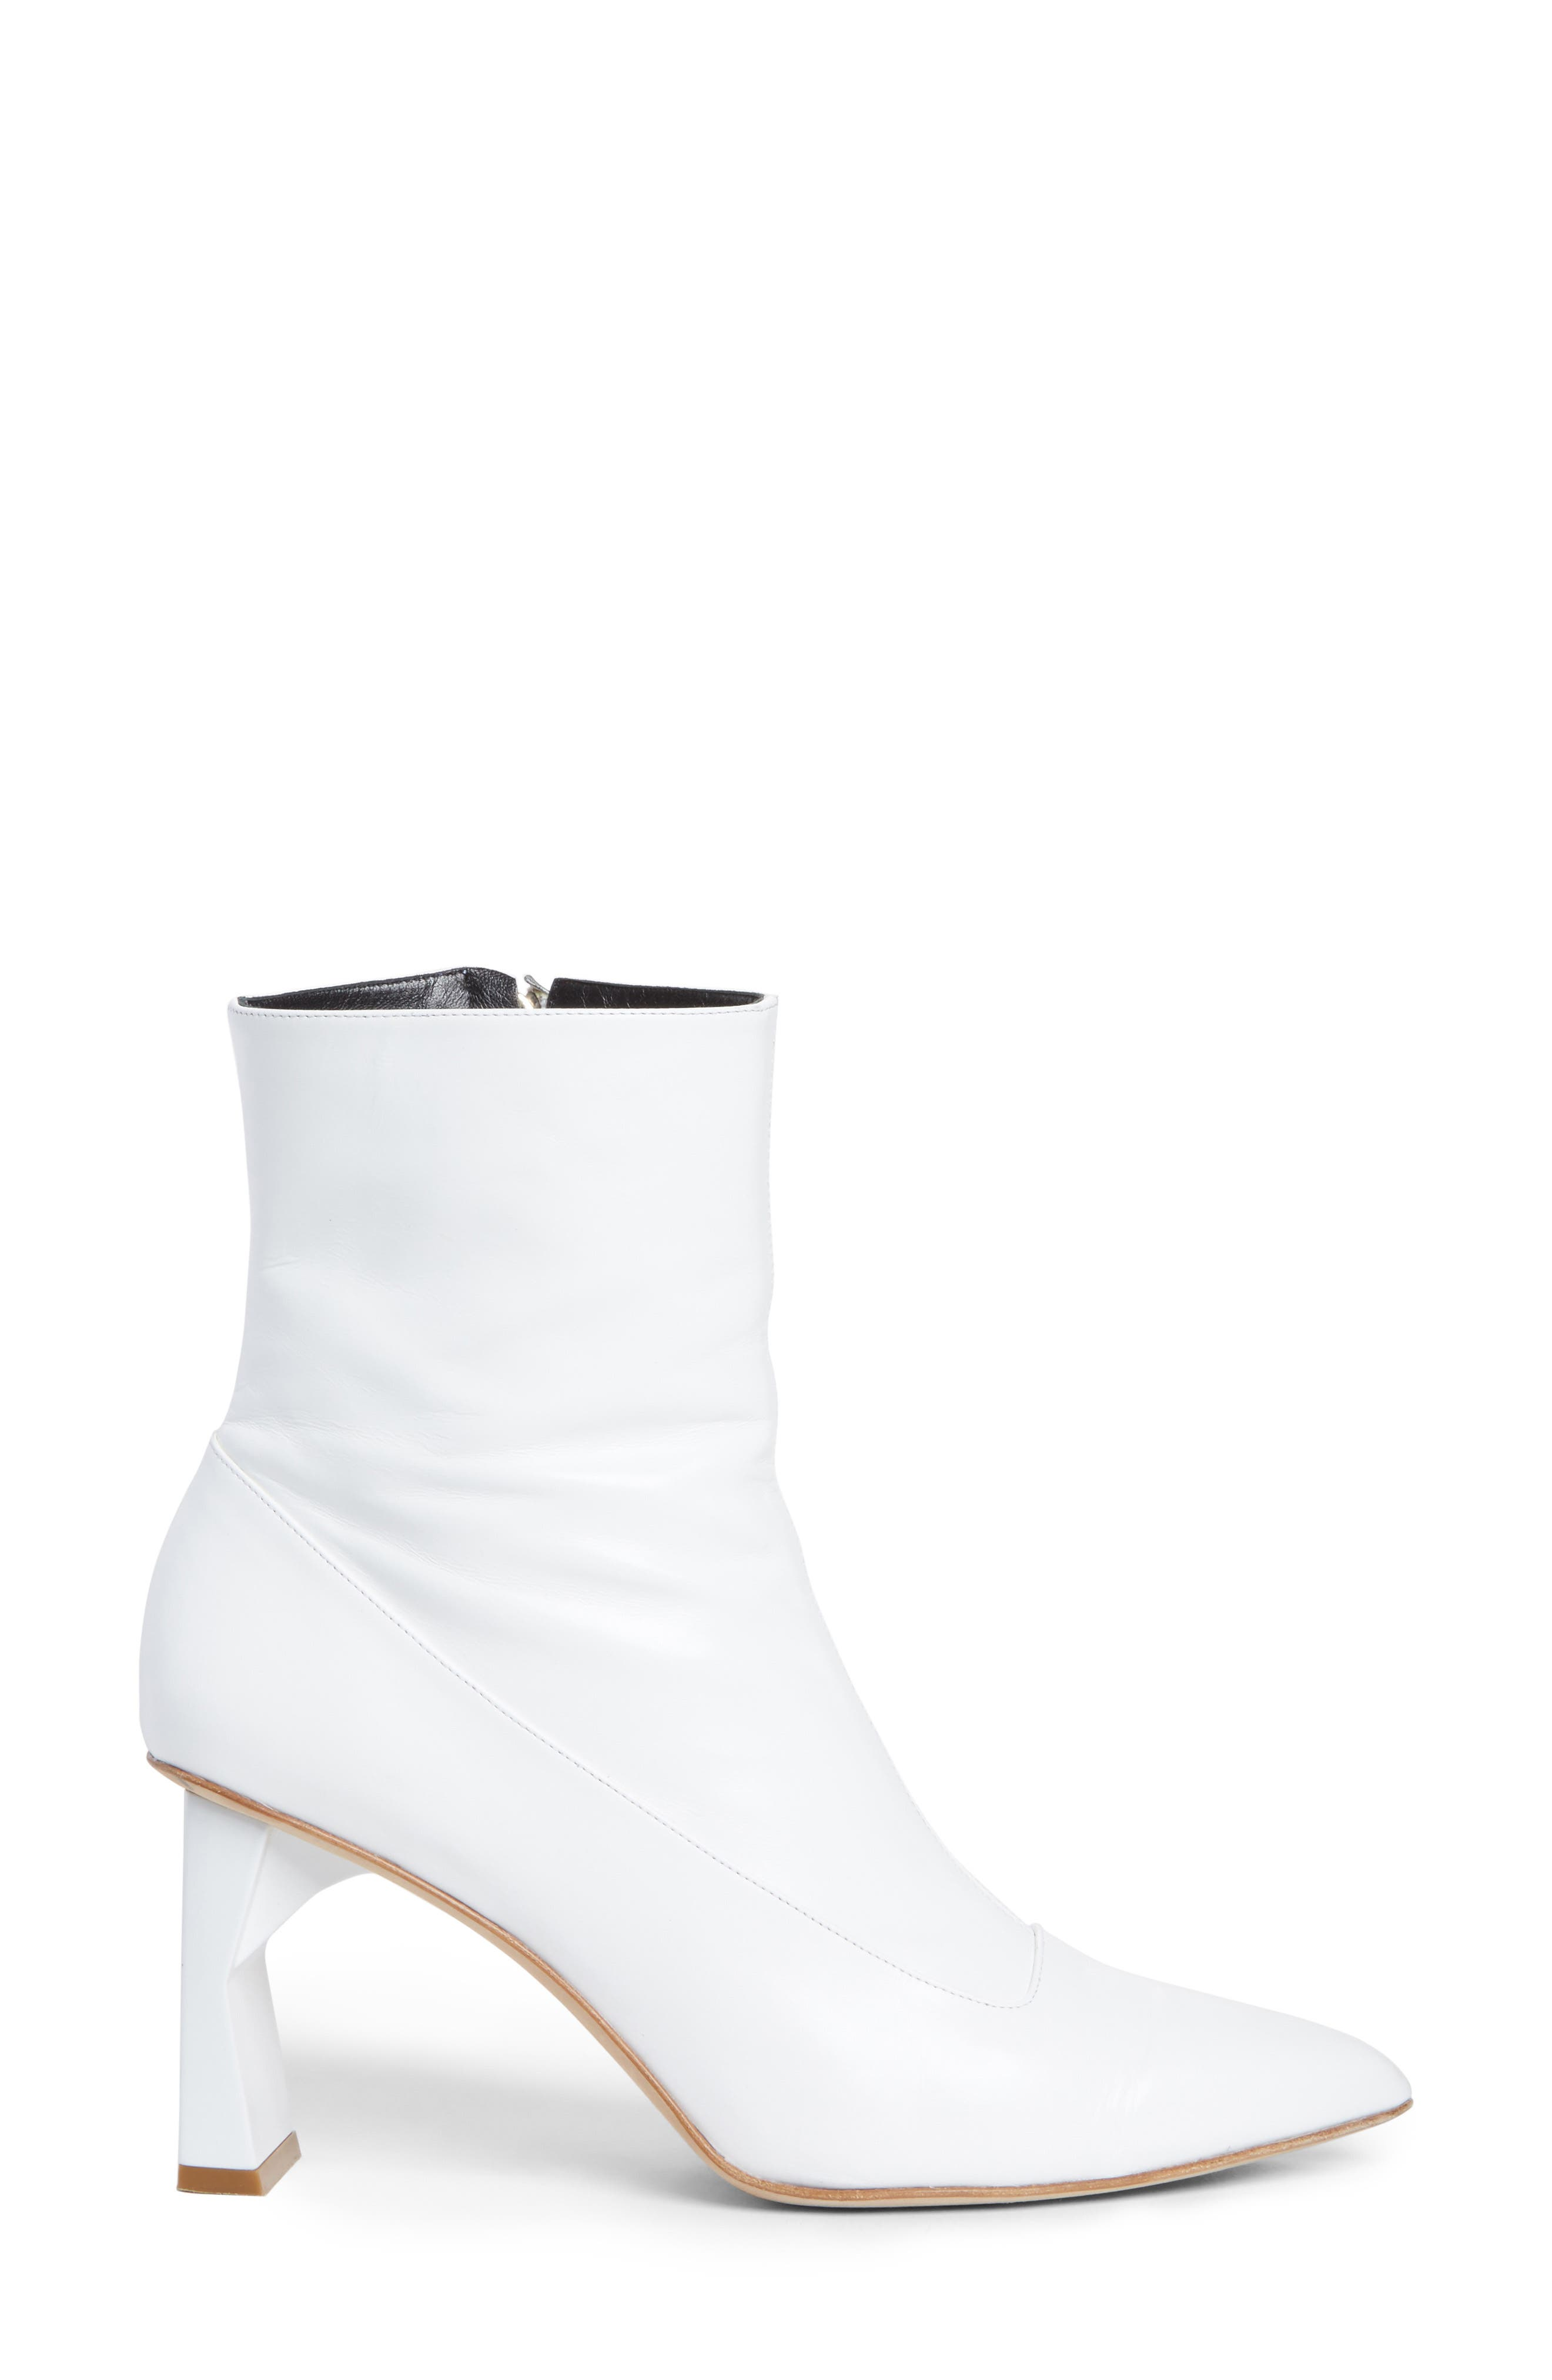 Alternate Image 3  - Tibi Alexis Pointy Toe Bootie (Women)